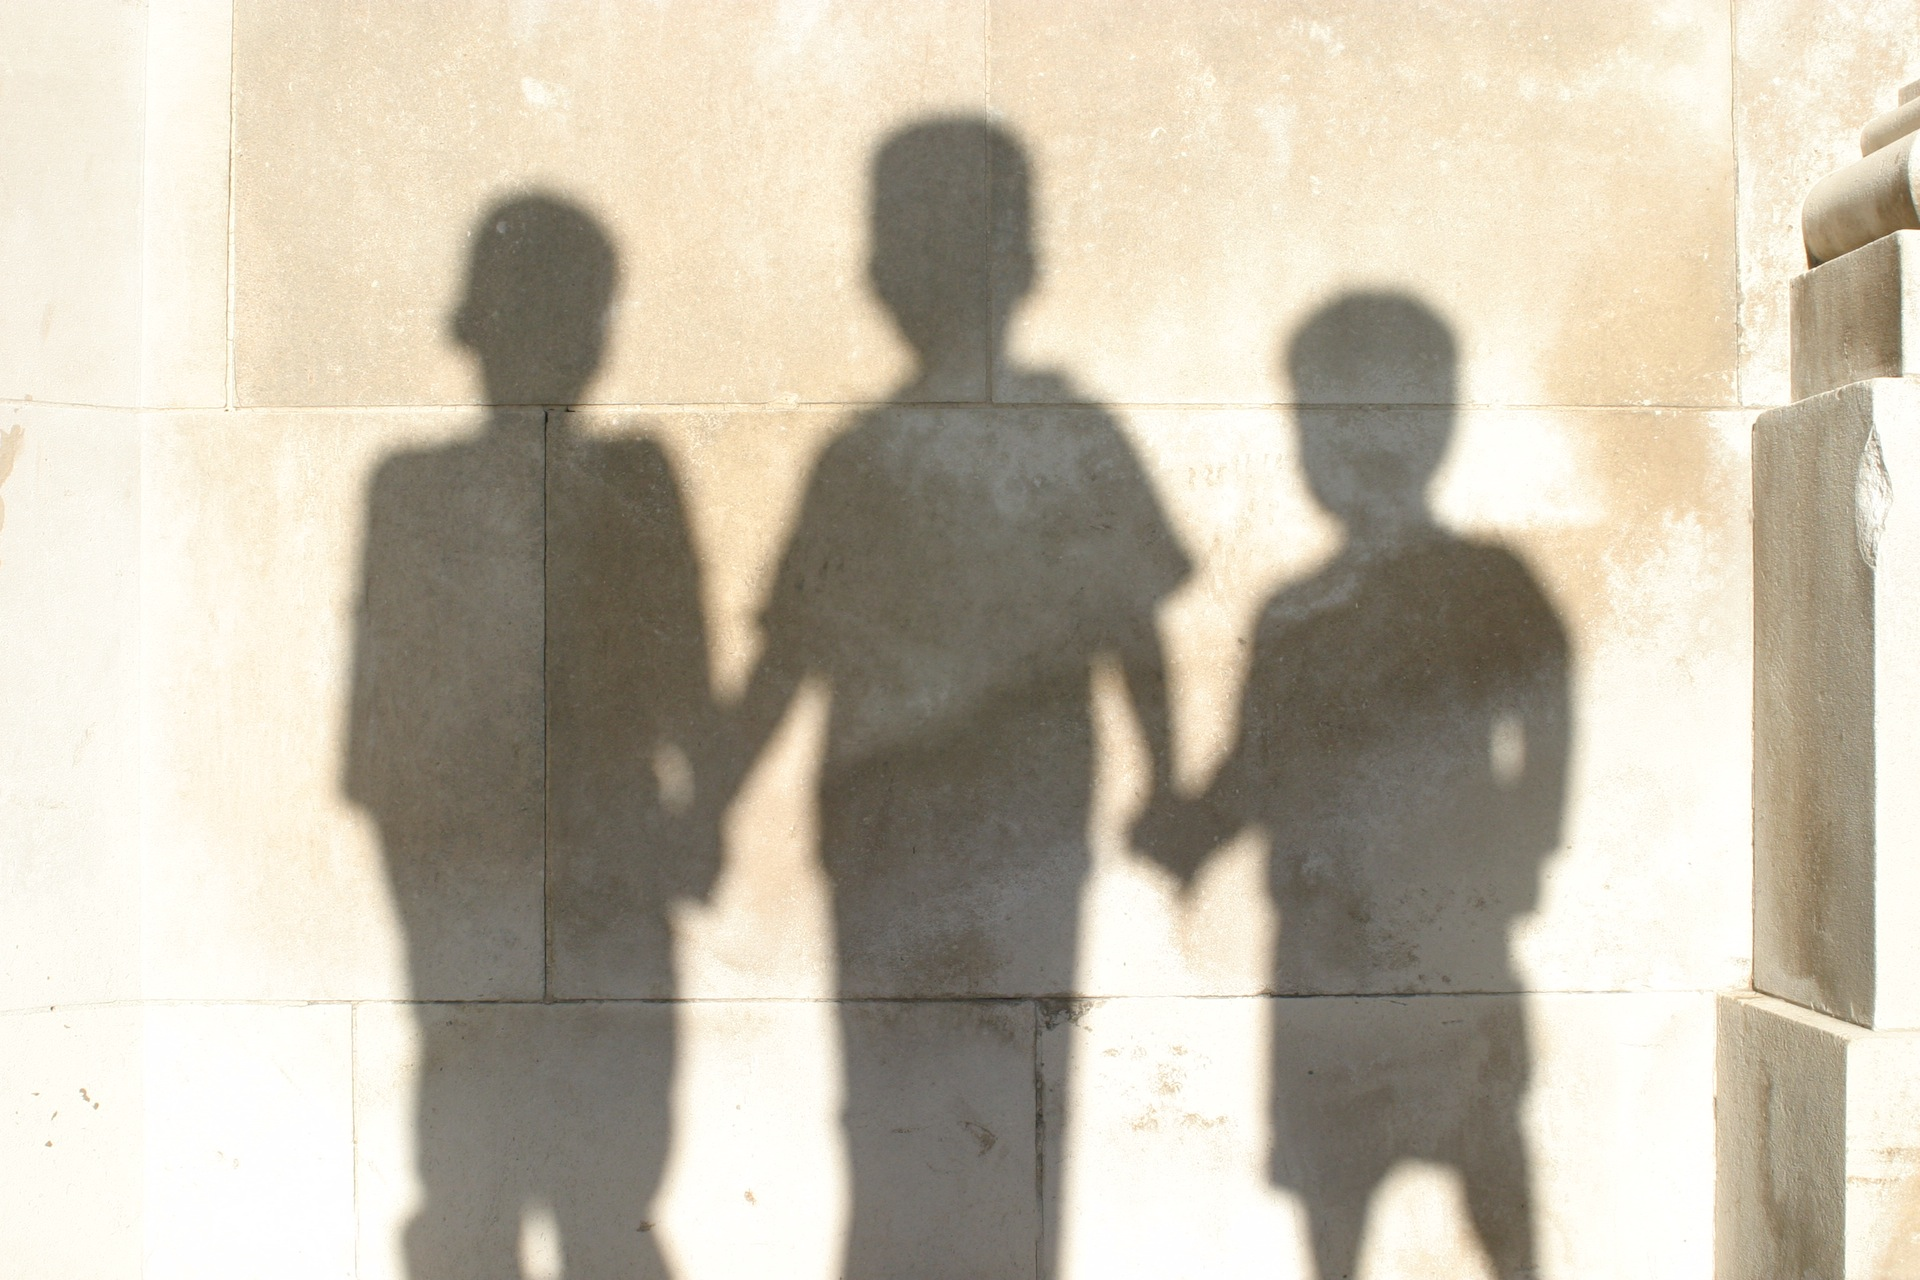 Study: Black and Hispanic Children Less Likely to Receive Mental ...